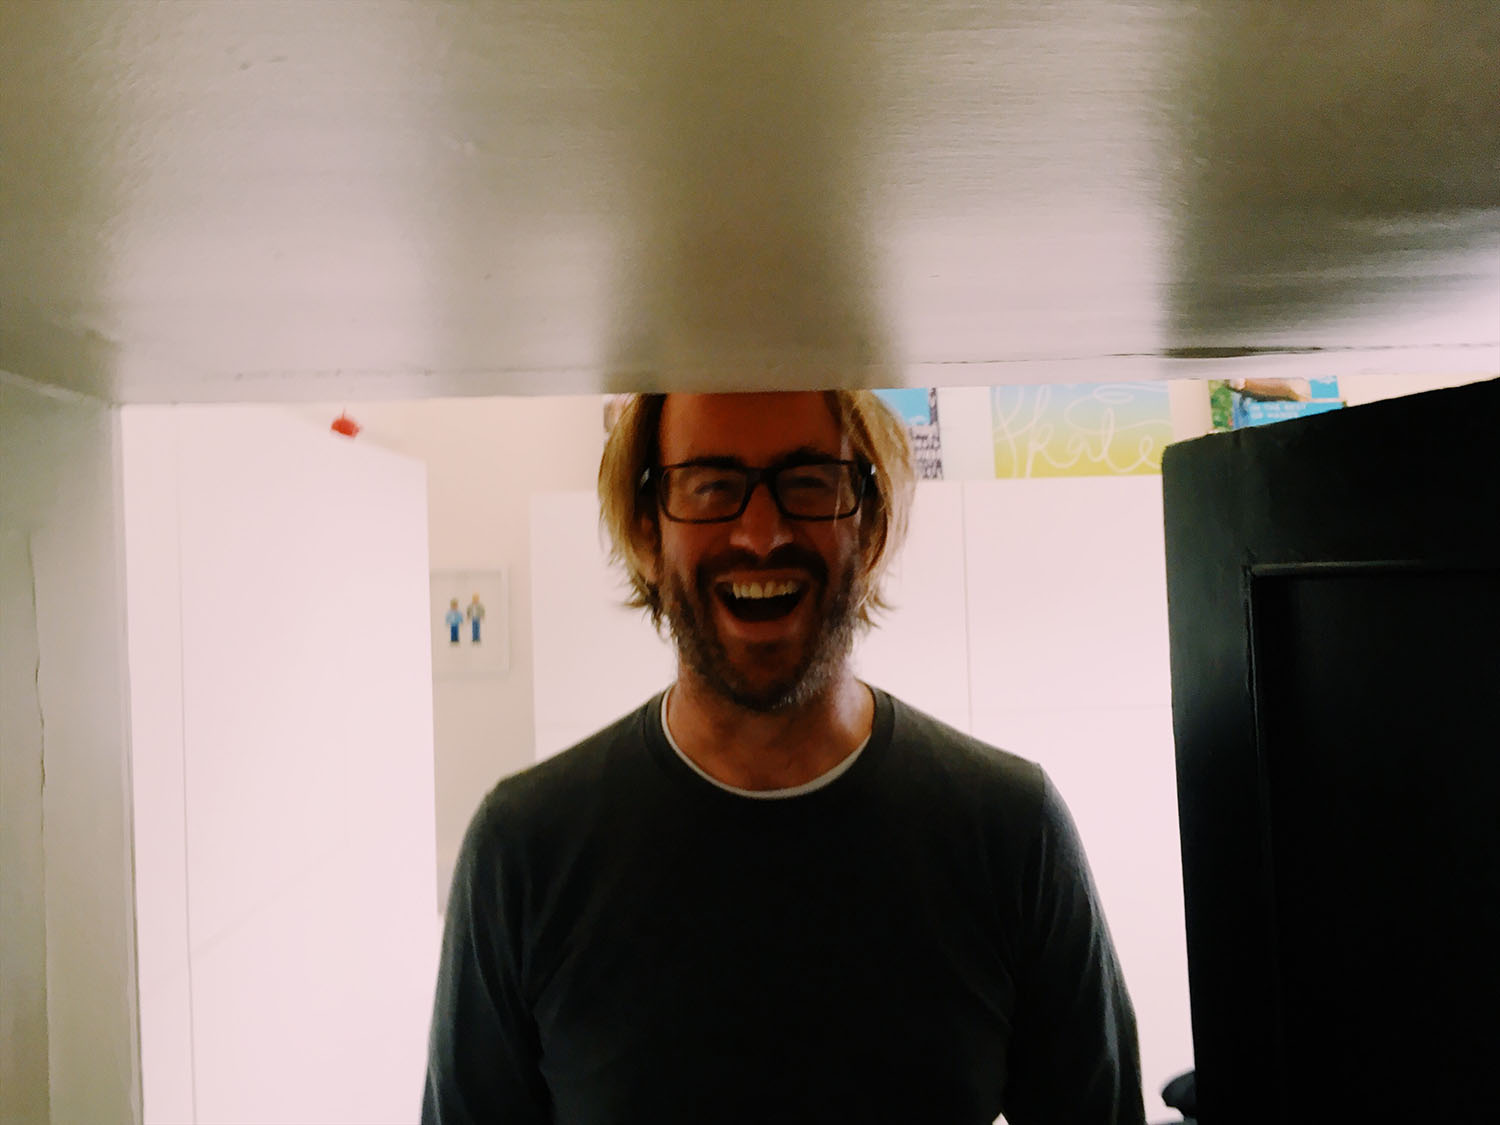 Testing the head clearance in our new office at Somerset House